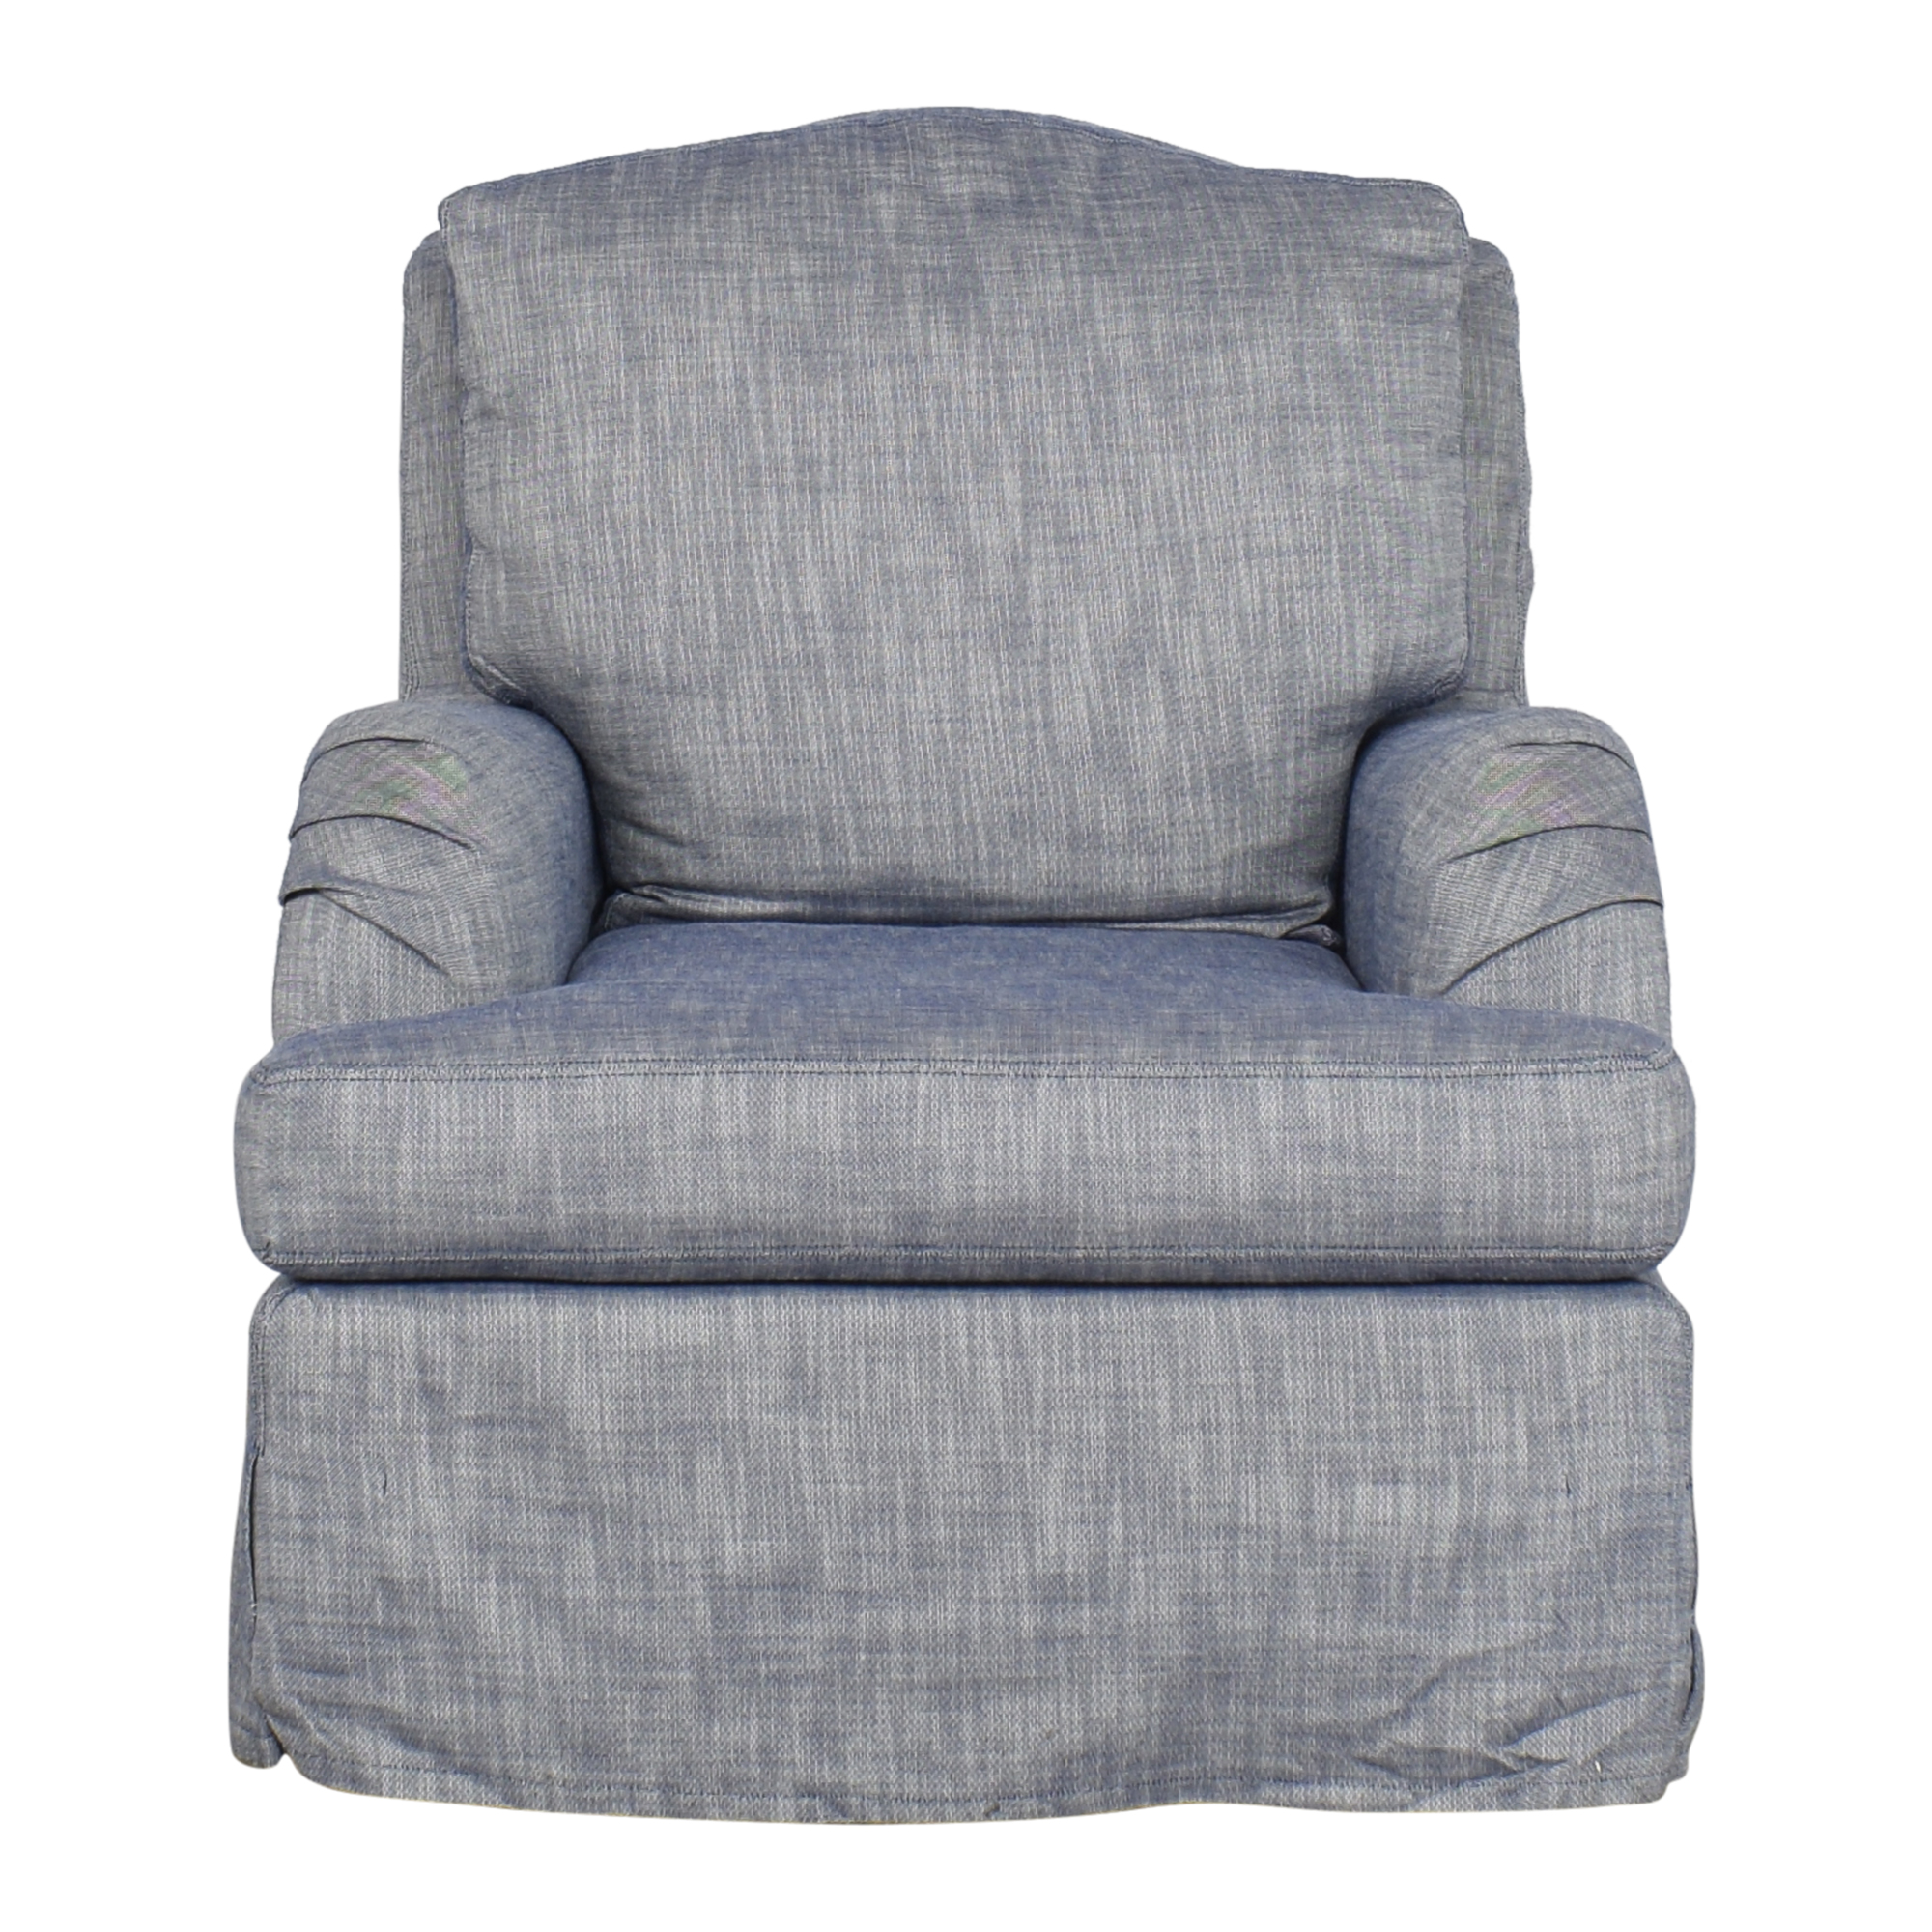 Slipcovered Swivel Armchair on sale